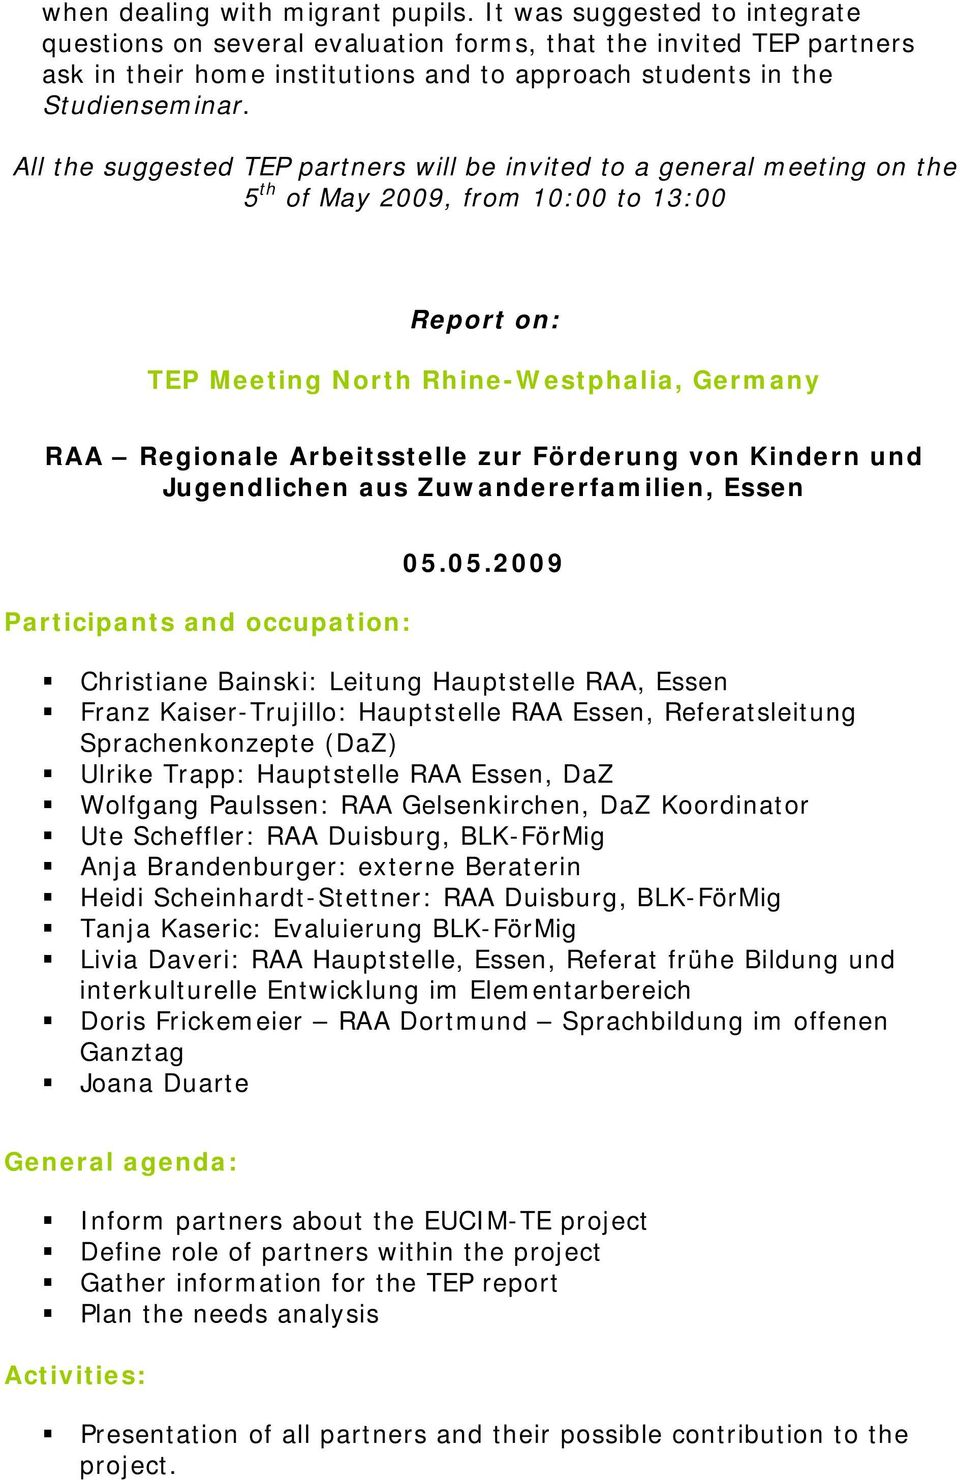 All the suggested partners will be invited to a general meeting on the 5 th of May 2009, from 10:00 to 13:00 Report on: Meeting North Rhine-Westphalia, Germany RAA Regionale Arbeitsstelle zur